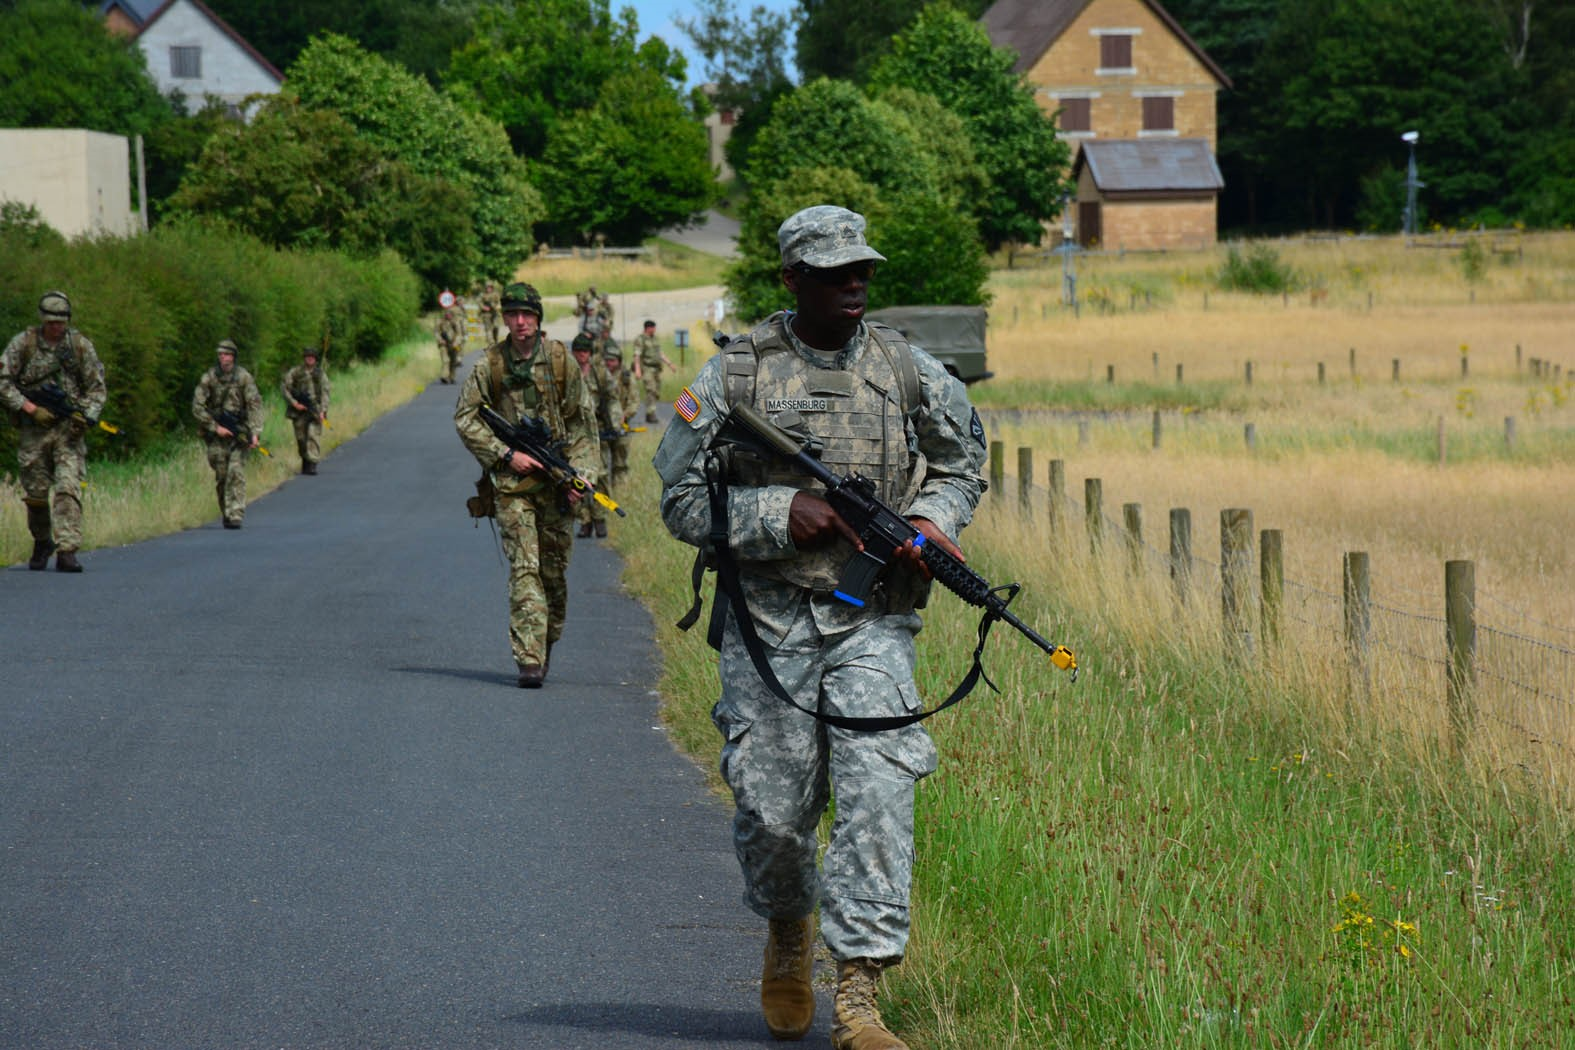 British and American Soldiers conduct joint foot patrols throughout the Stanford Training Area, United Kingdom during Steppe Eagle 16.